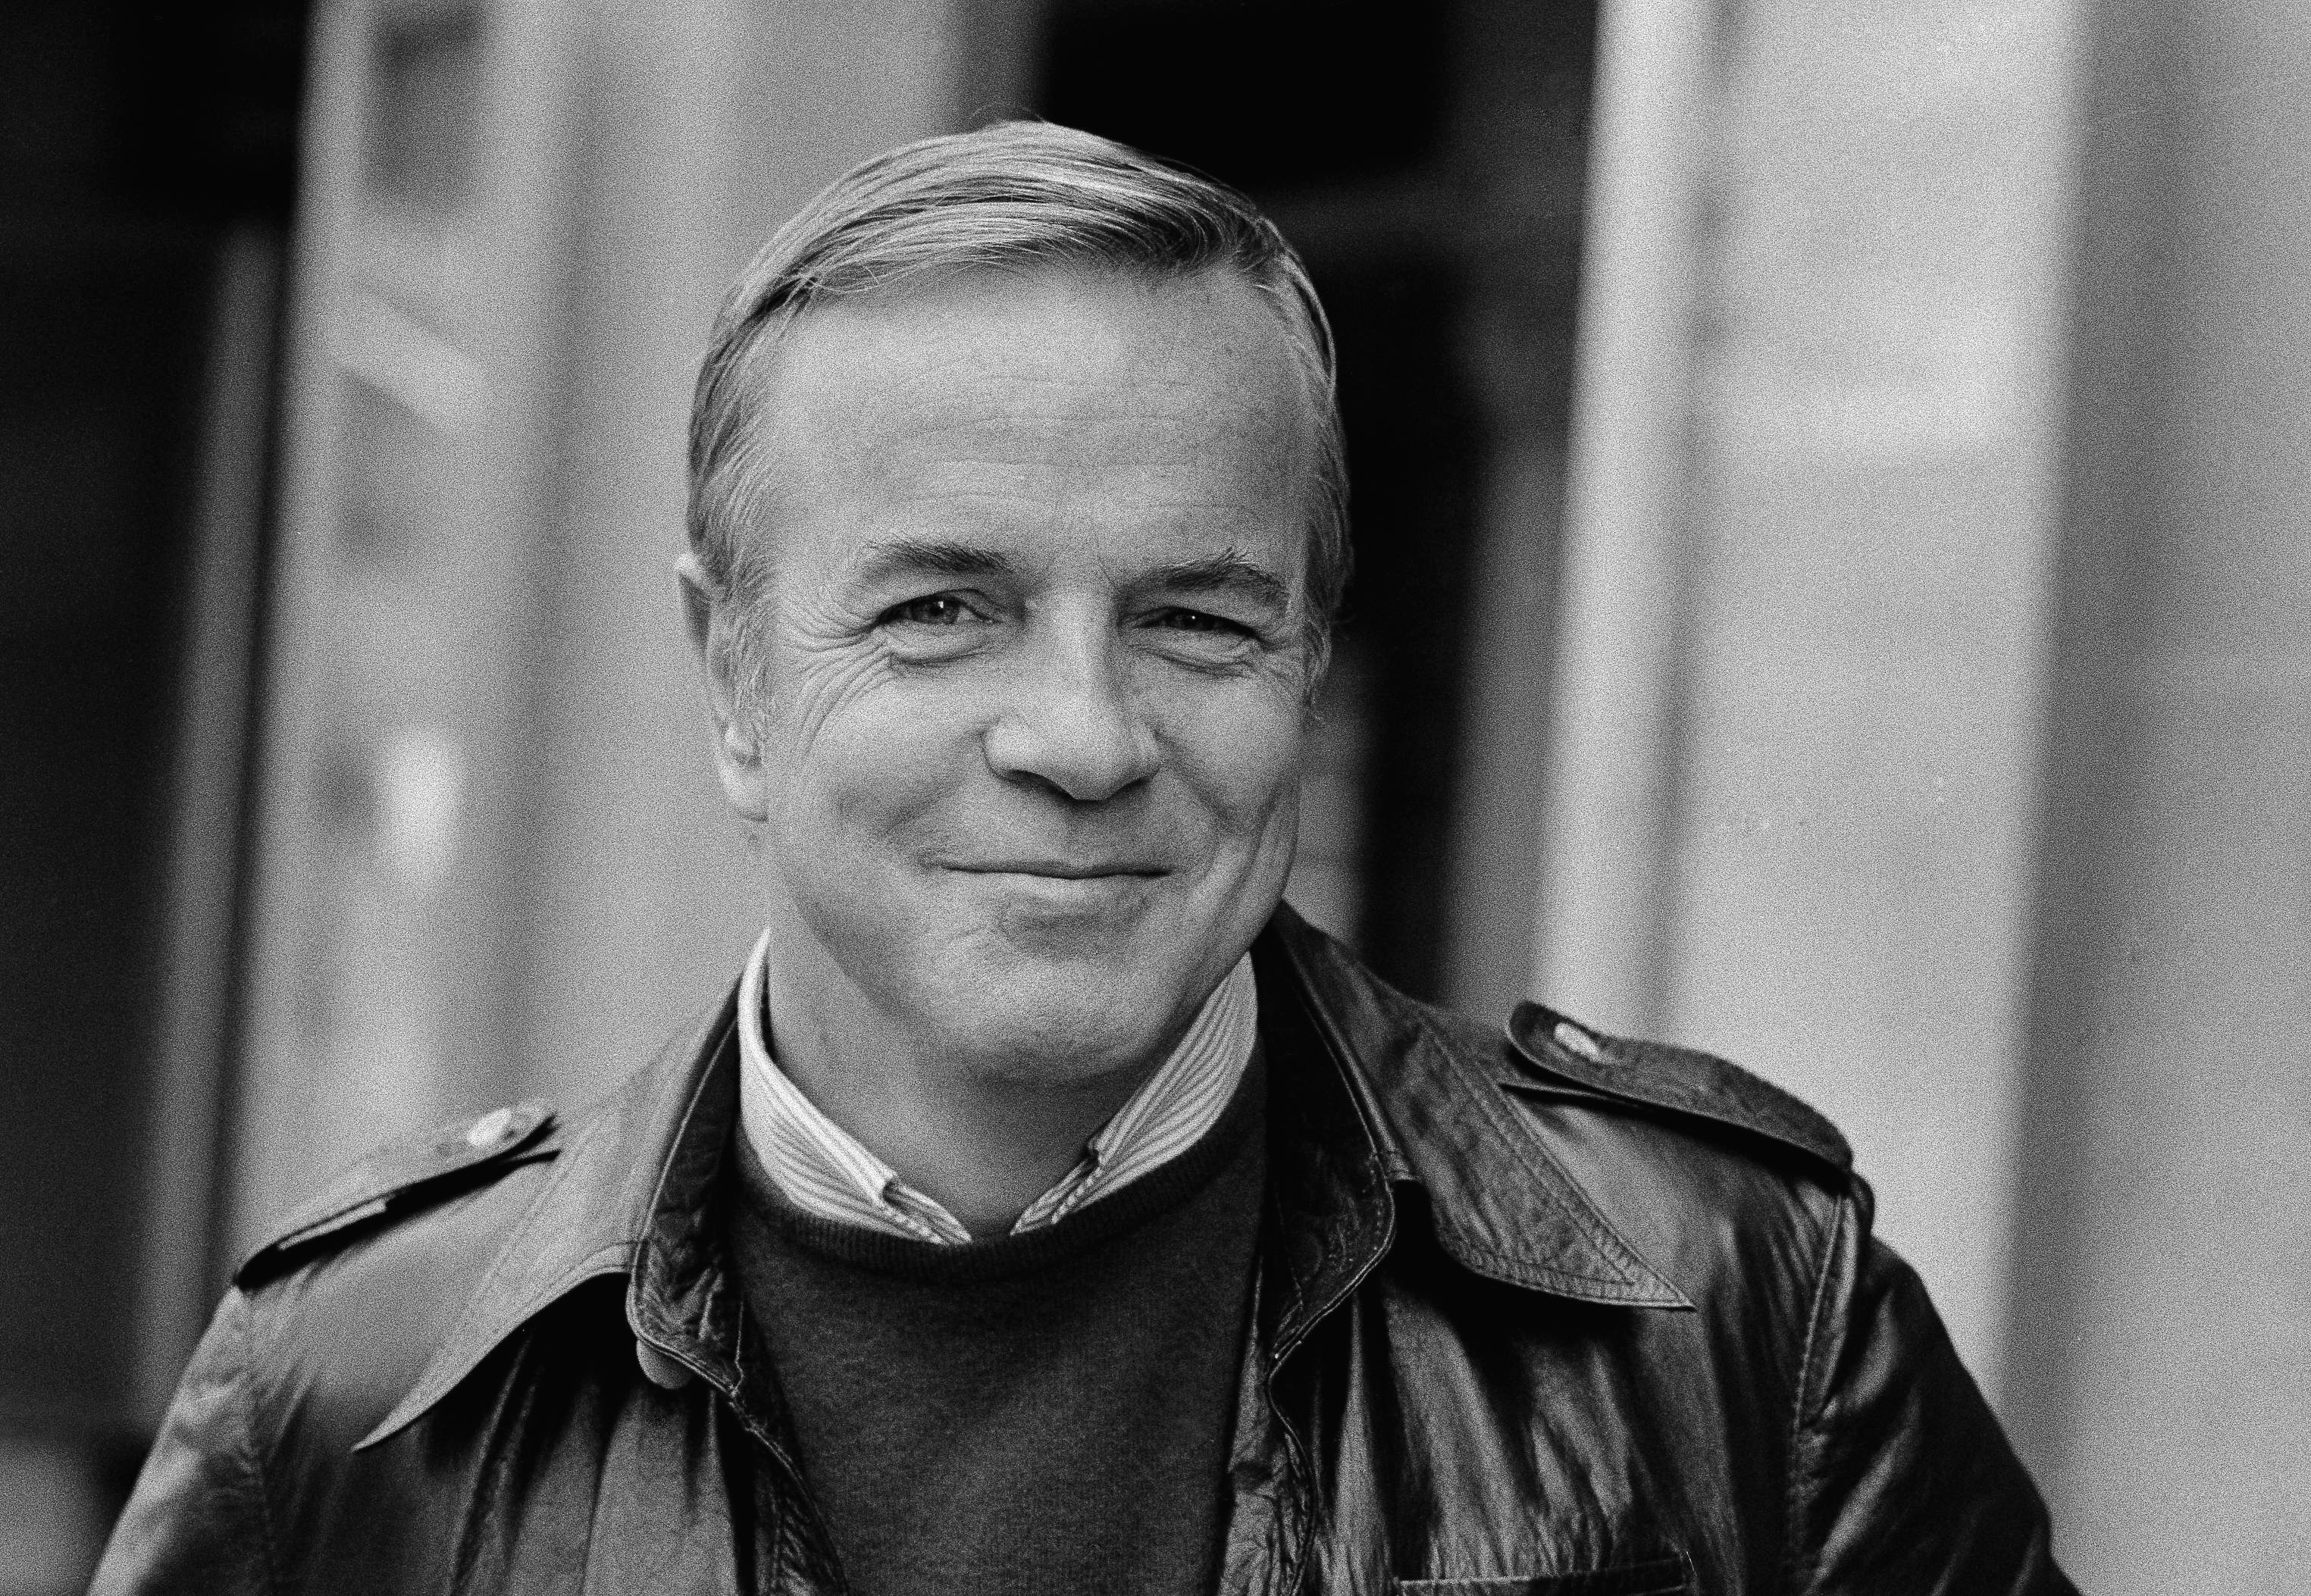 Franco Zeffirelli, seen in New York, in this Oct. 31, 1974 file photo. Italian film director Franzo Zeffirelli has died in Rome at the age of 96.